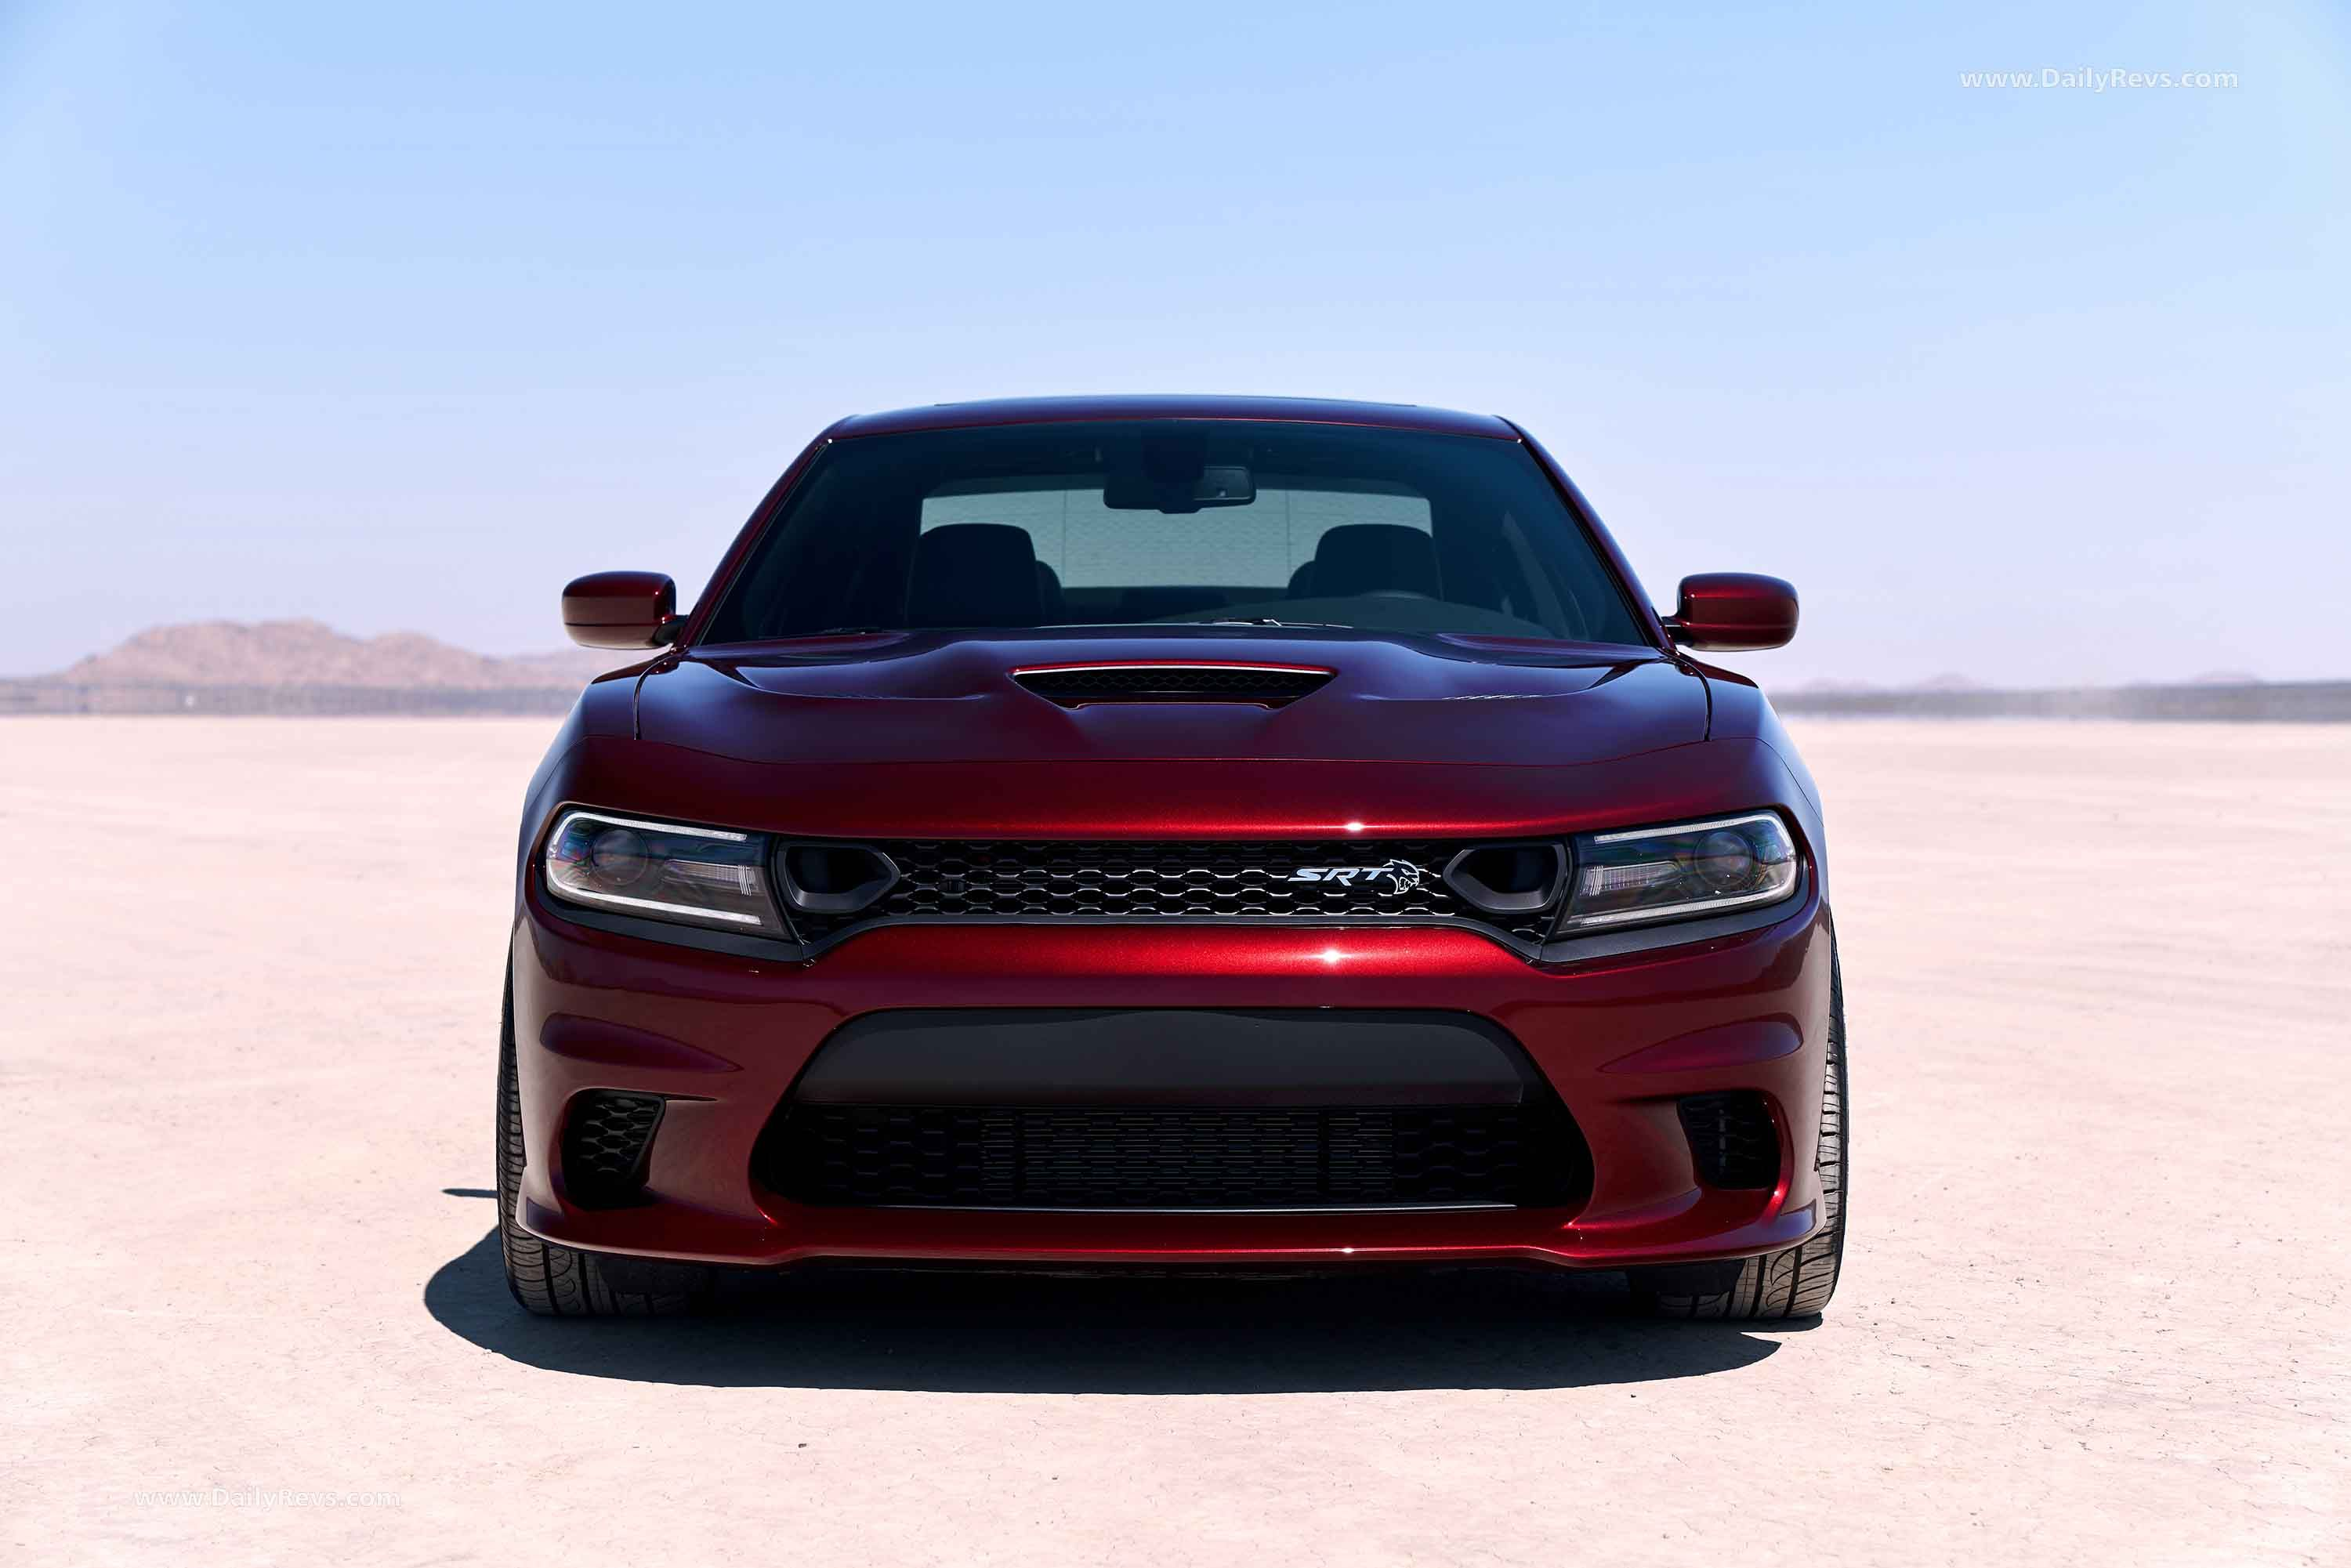 2019 Dodge Charger Srt Hellcat Hd Pictures Videos Specs